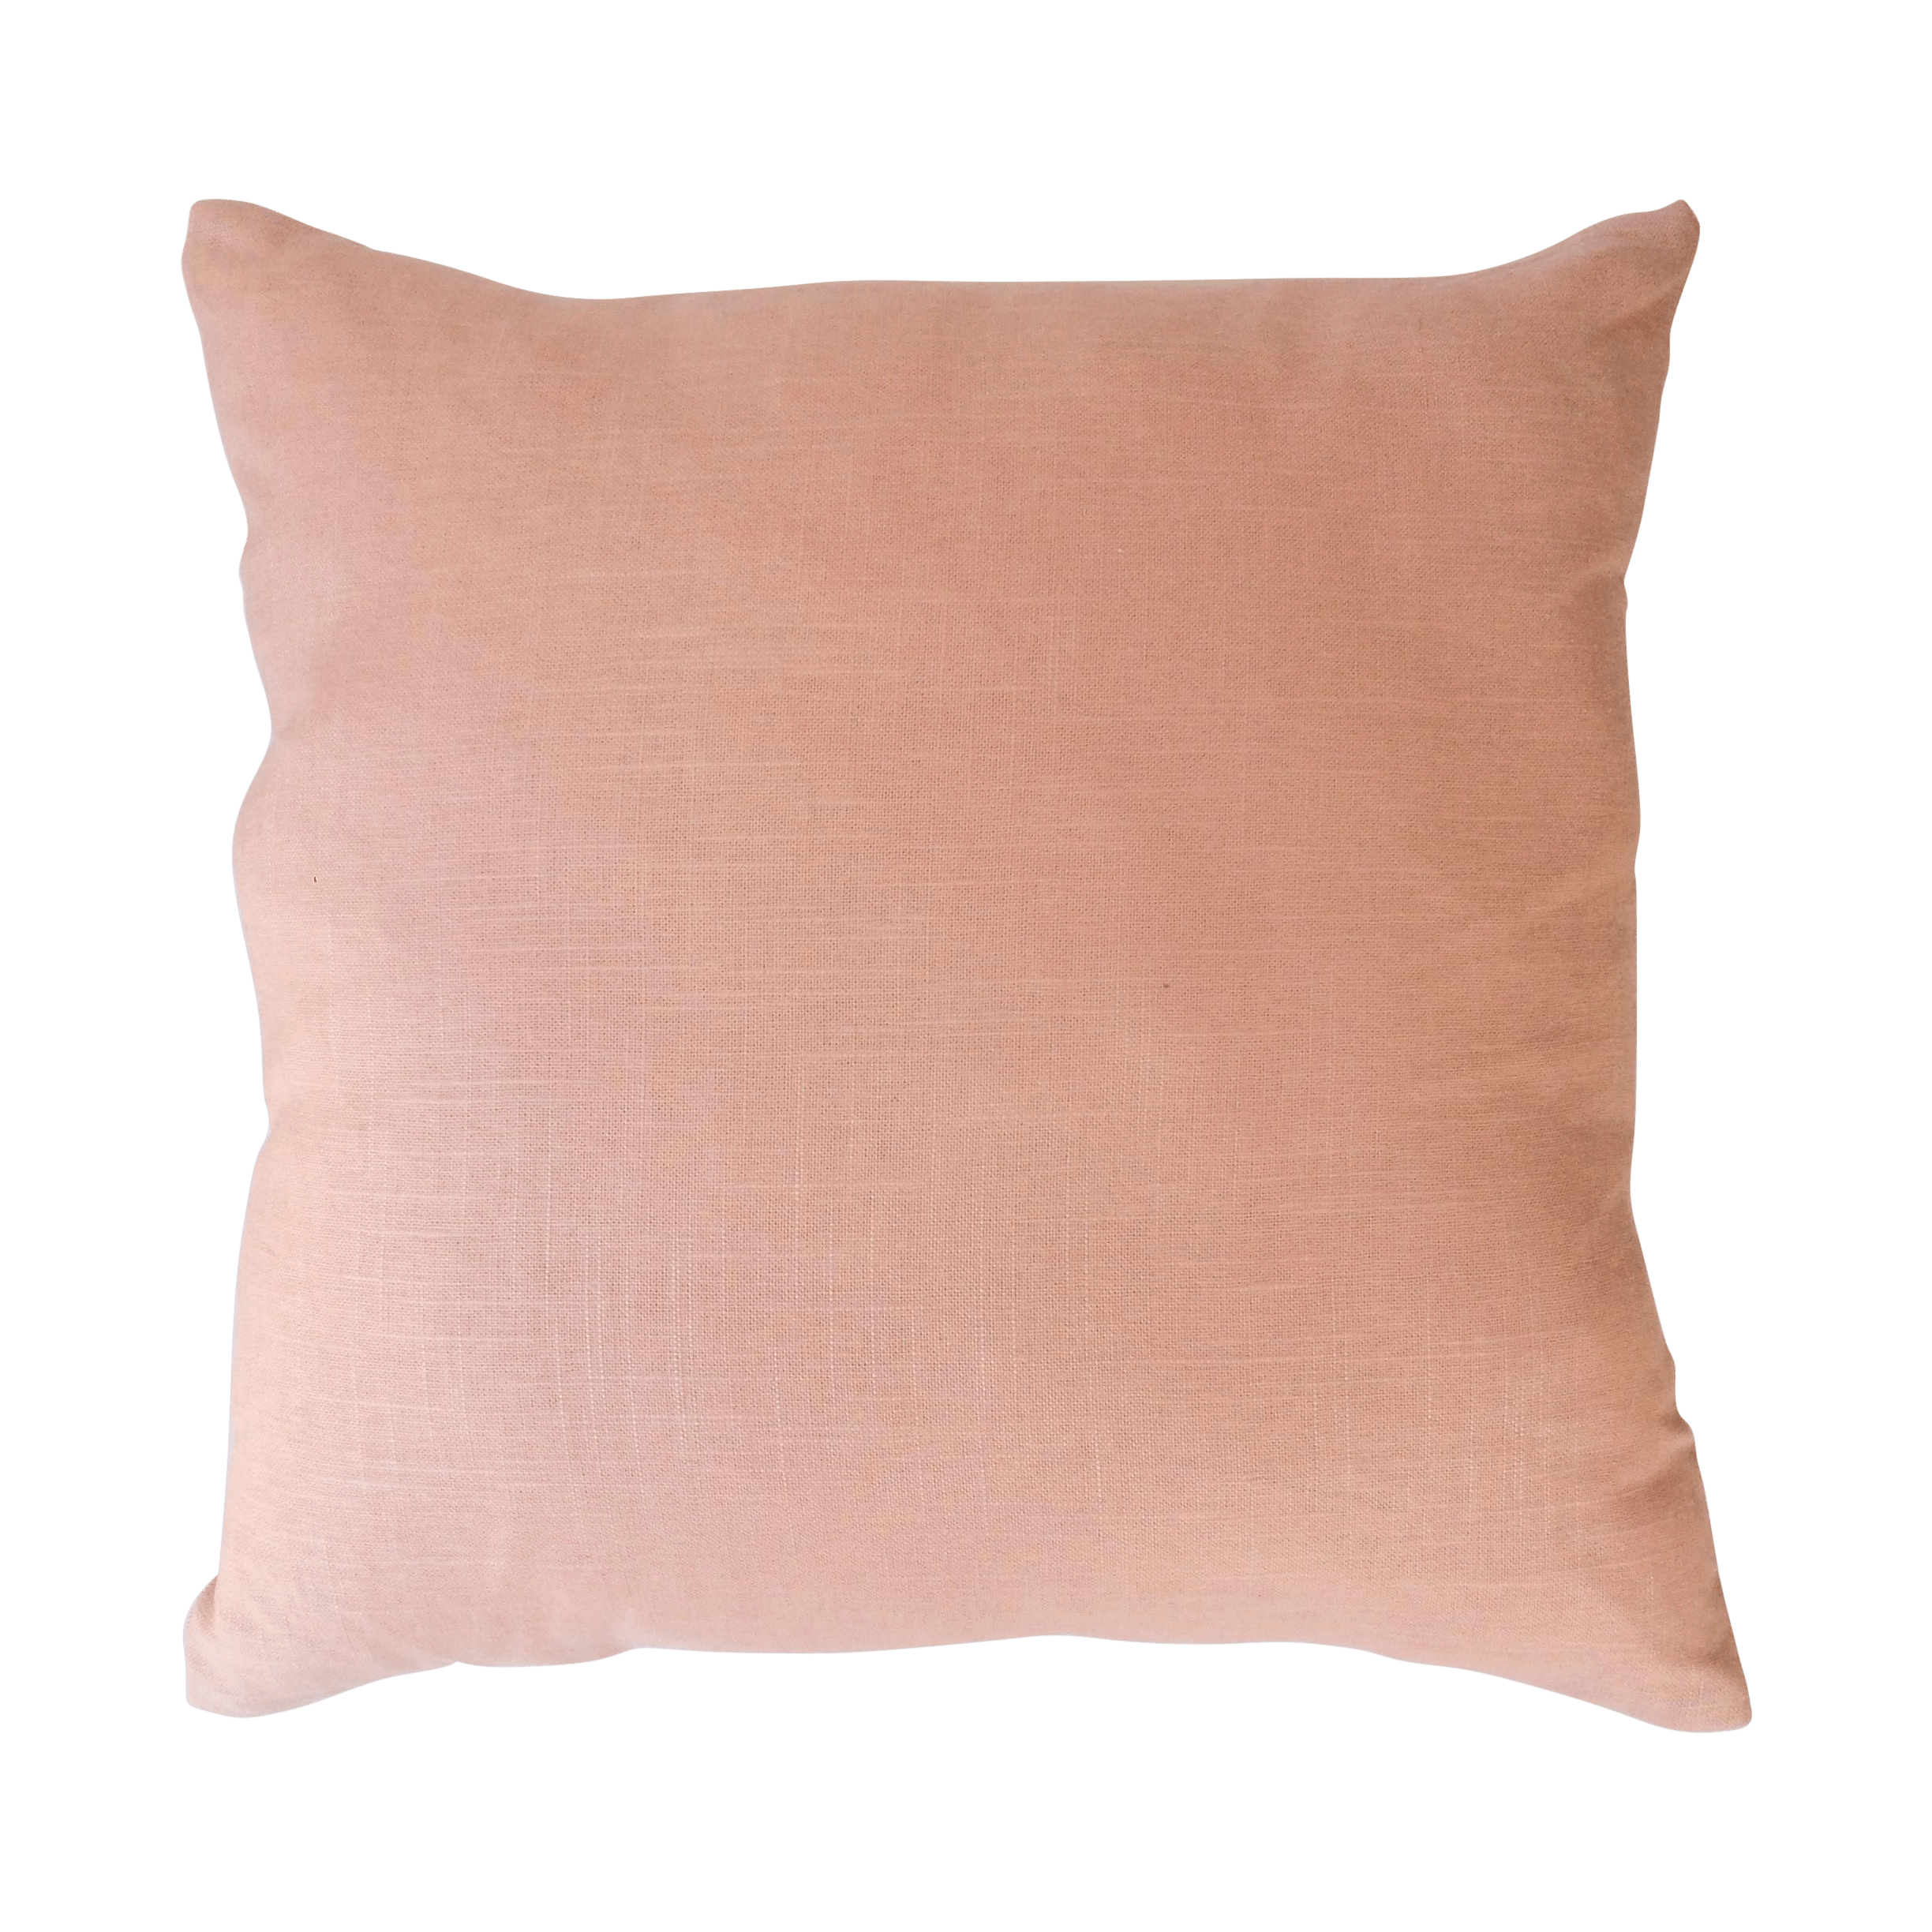 Light Pink Pillows  Pair  Chairish